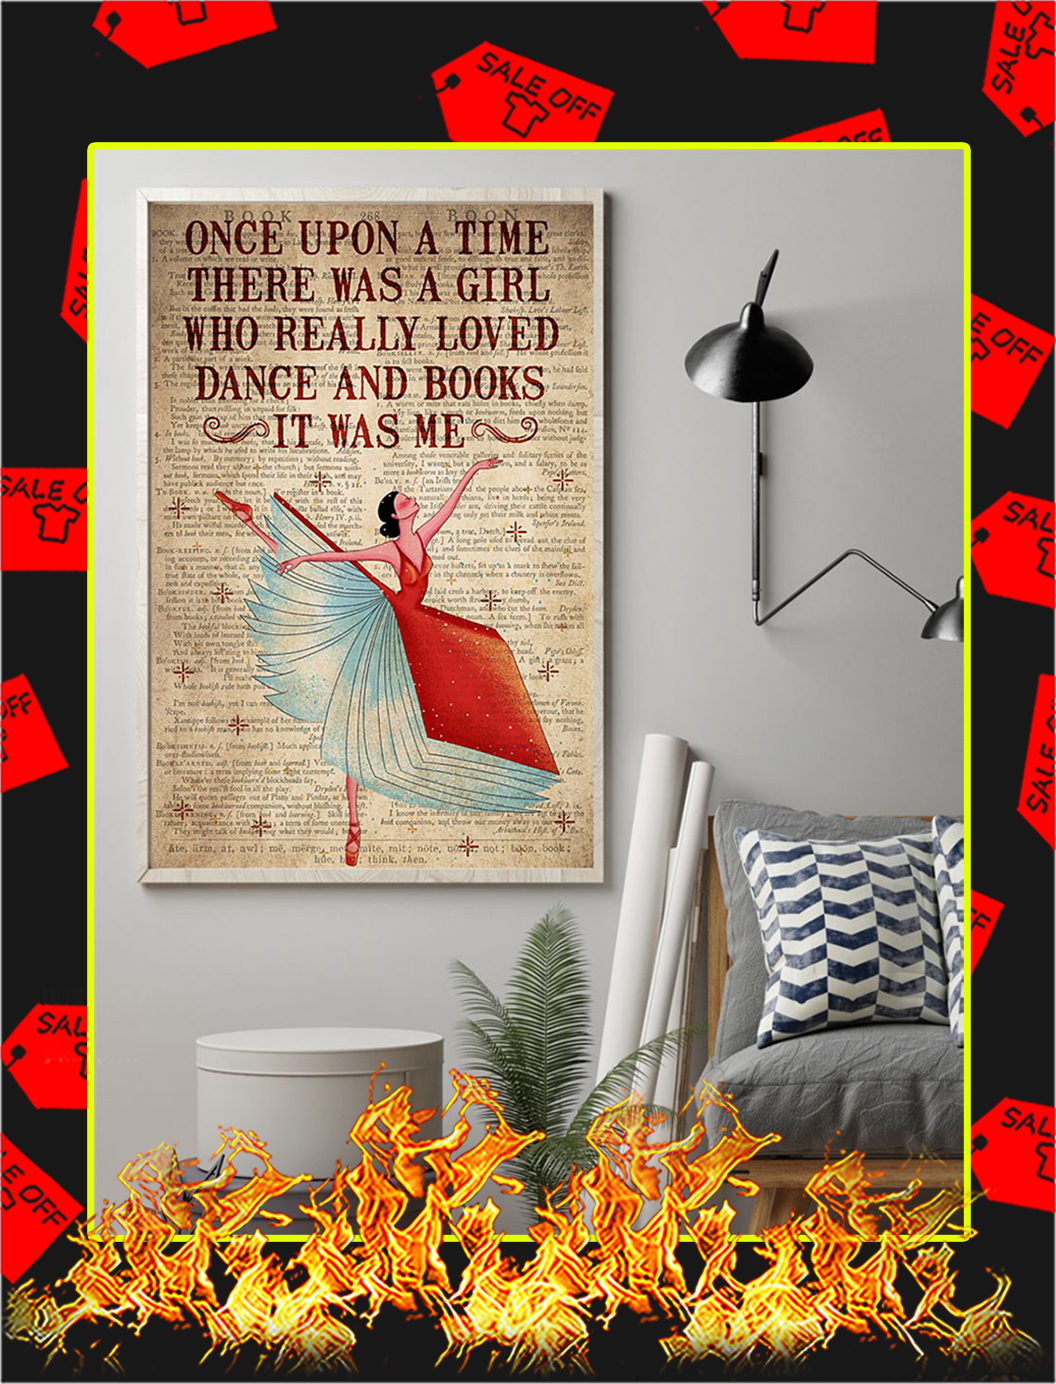 Once Upon A Time There Was A Girl Loved Dance and Books Poster- A1Once Upon A Time There Was A Girl Loved Dance and Books Poster- A1